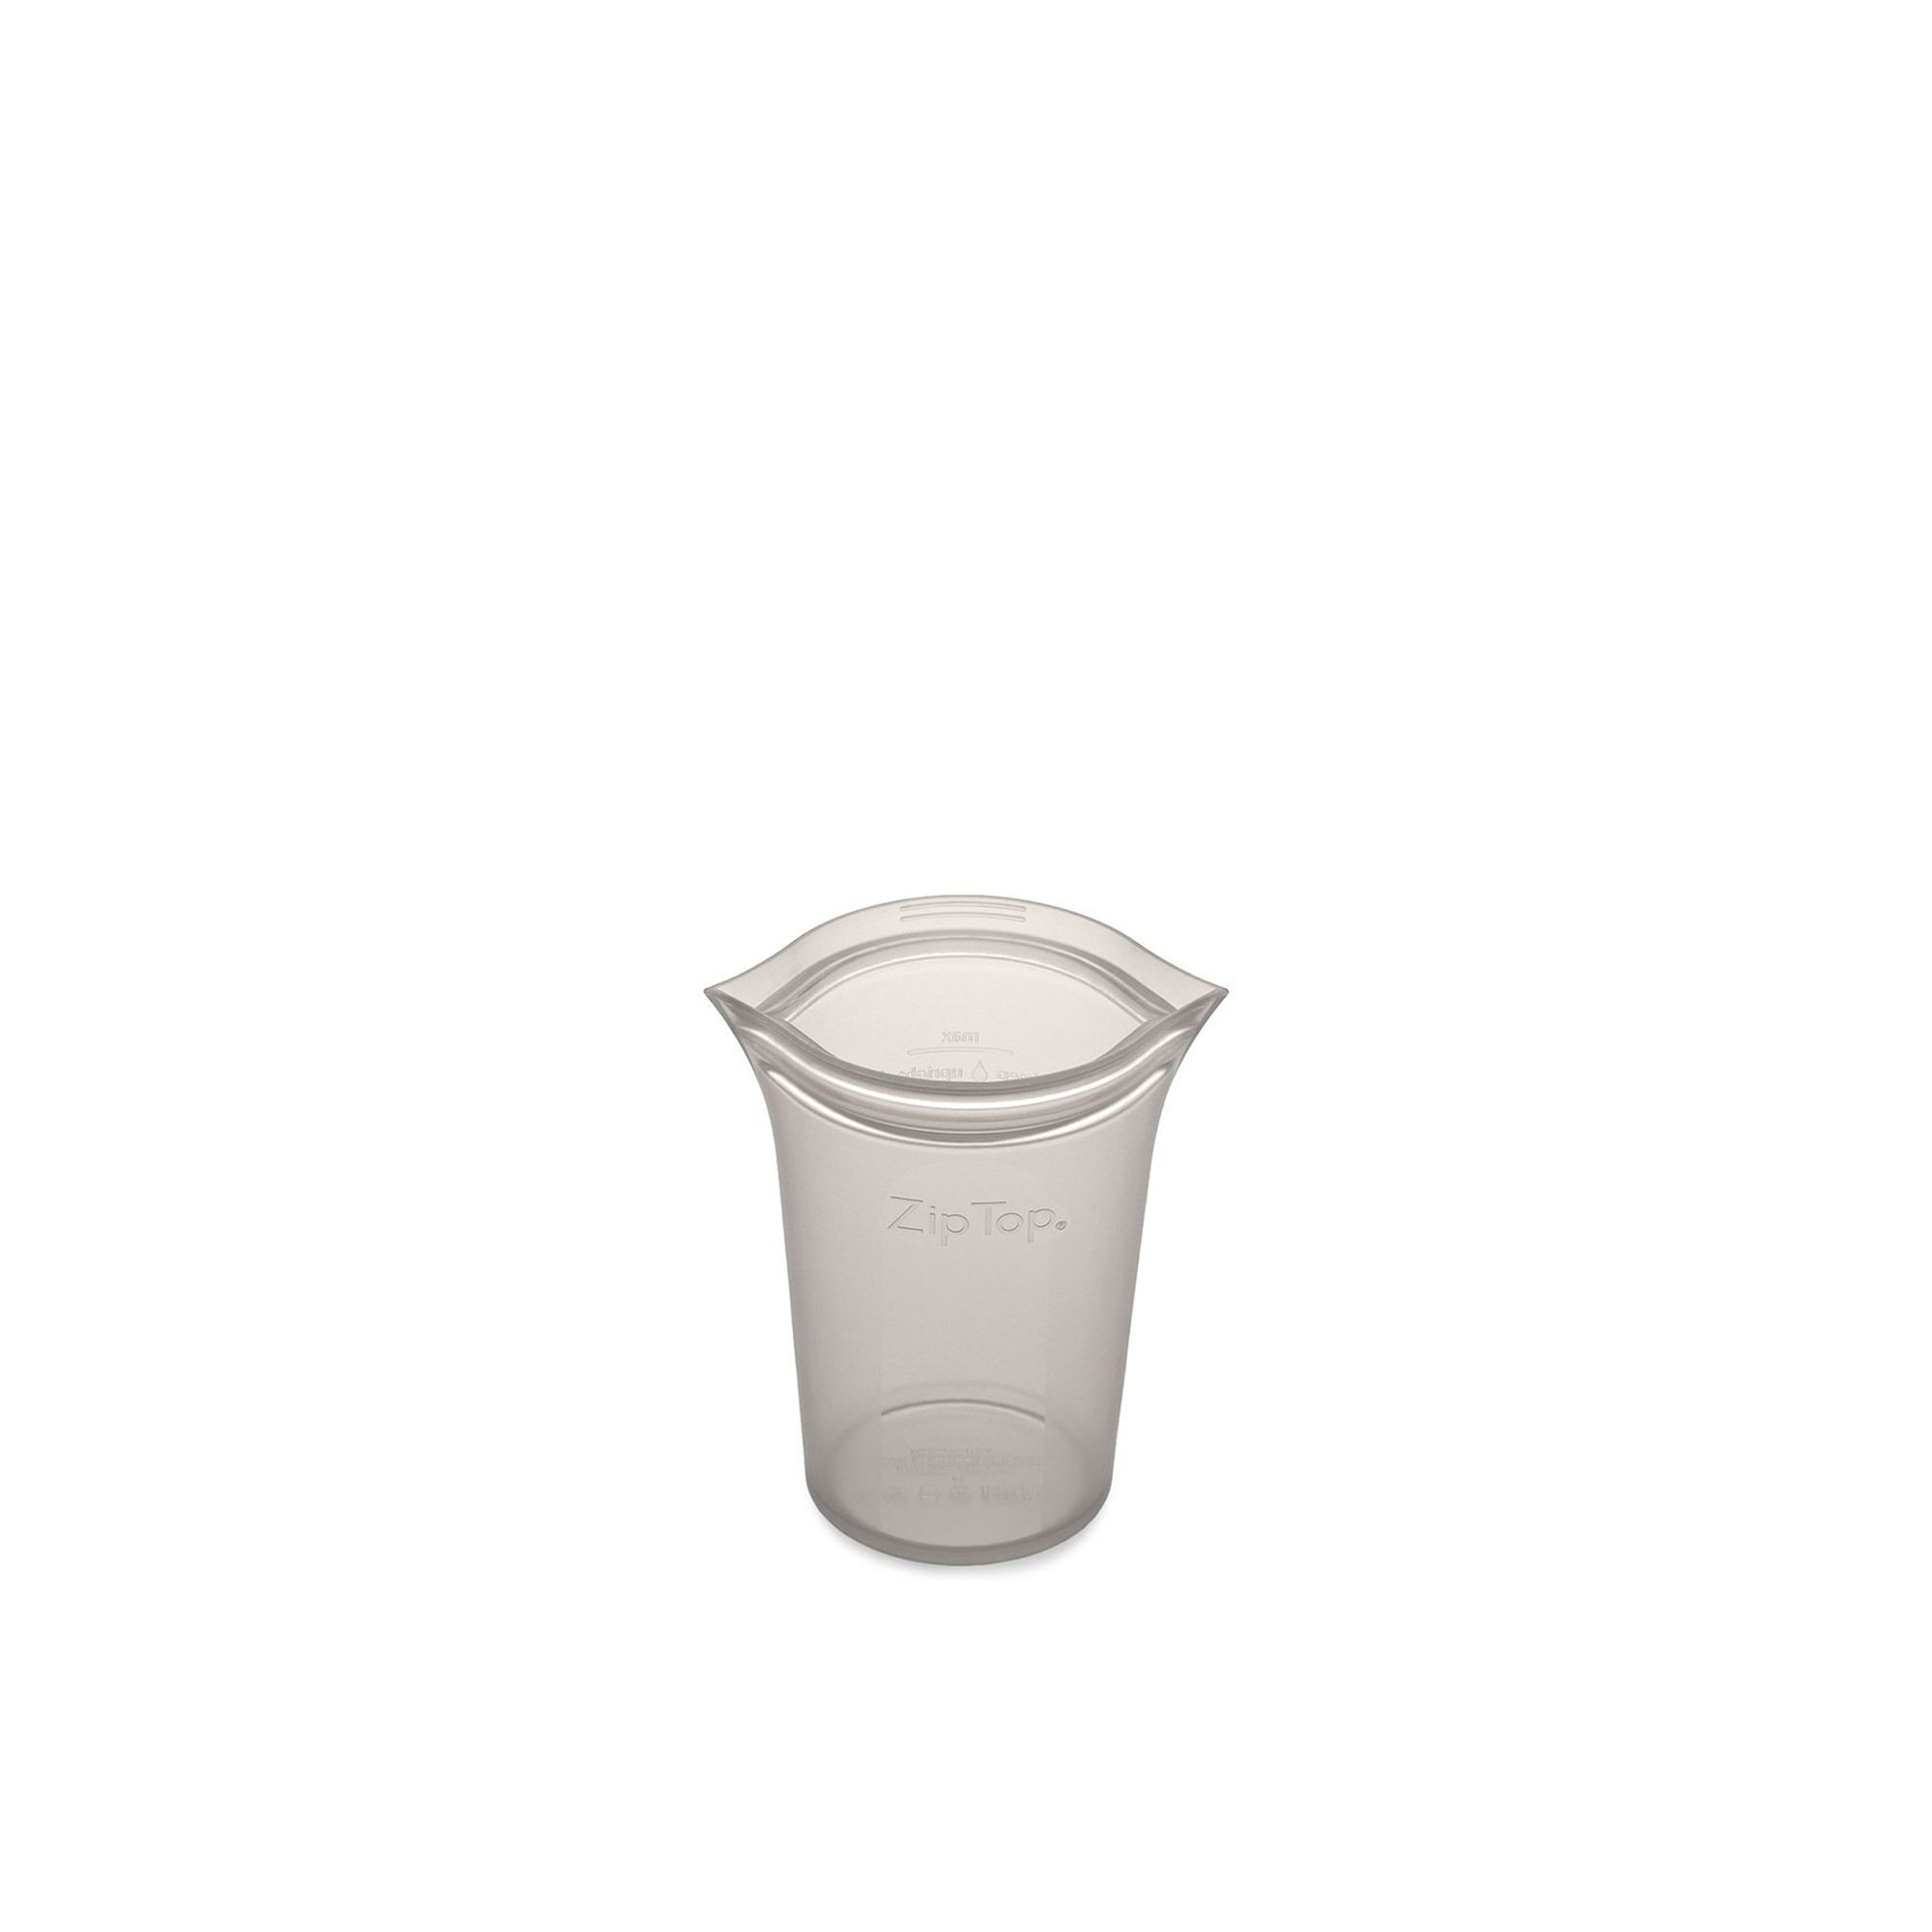 Zip Top Platinum Silicone Small Cup Container 237ml Grey